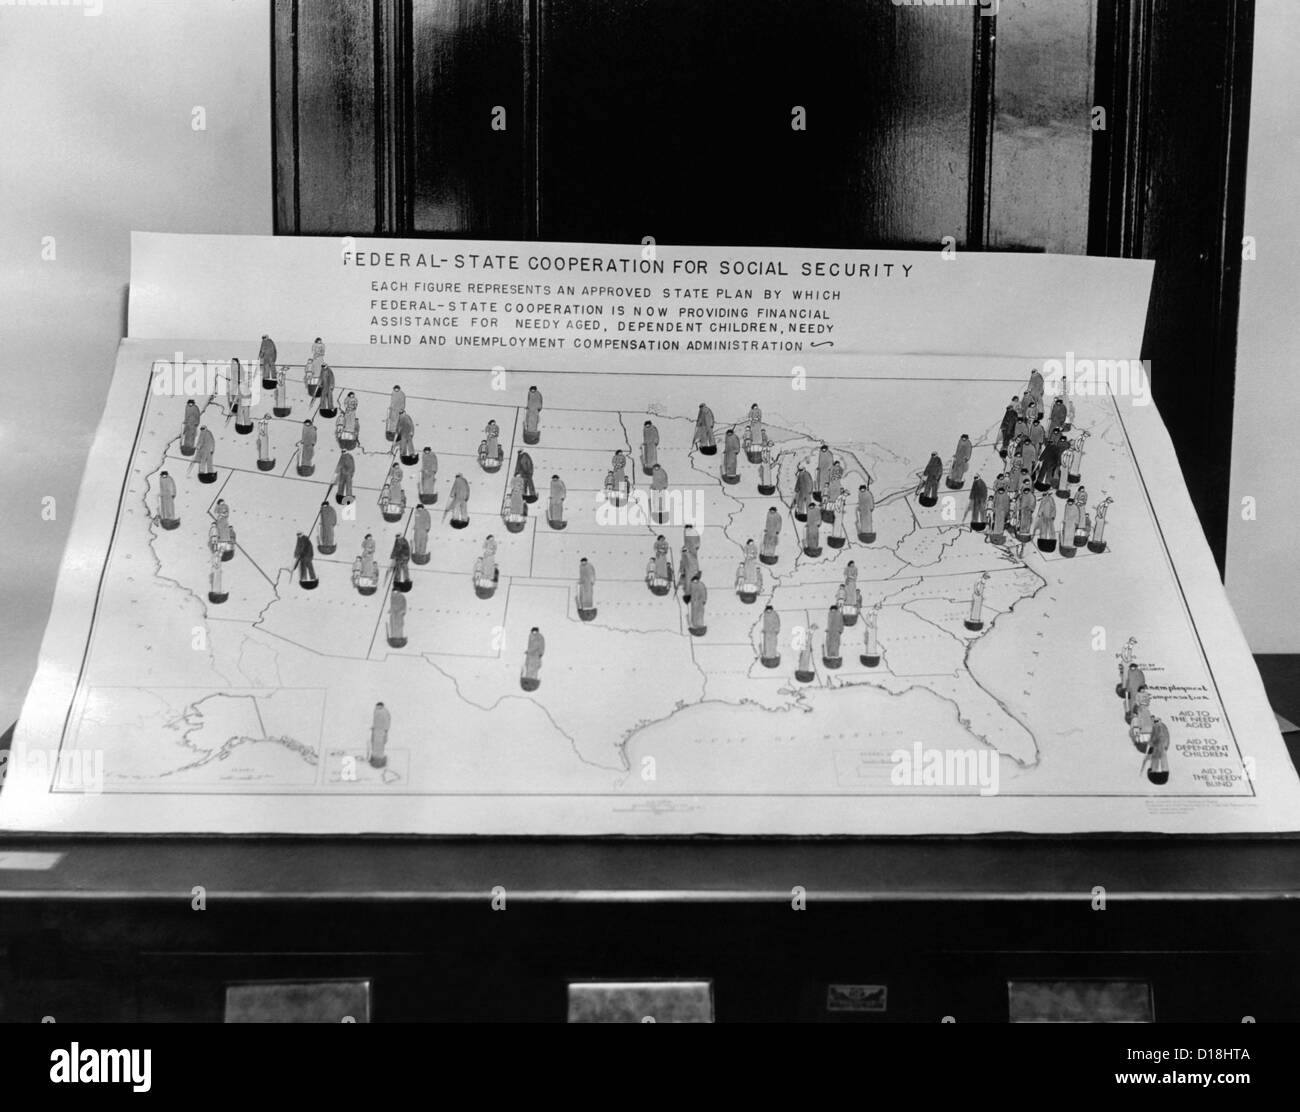 Social Security Board ready to operate. 1936 map shows figures representing an approved state plan by which Federal Stock Photo